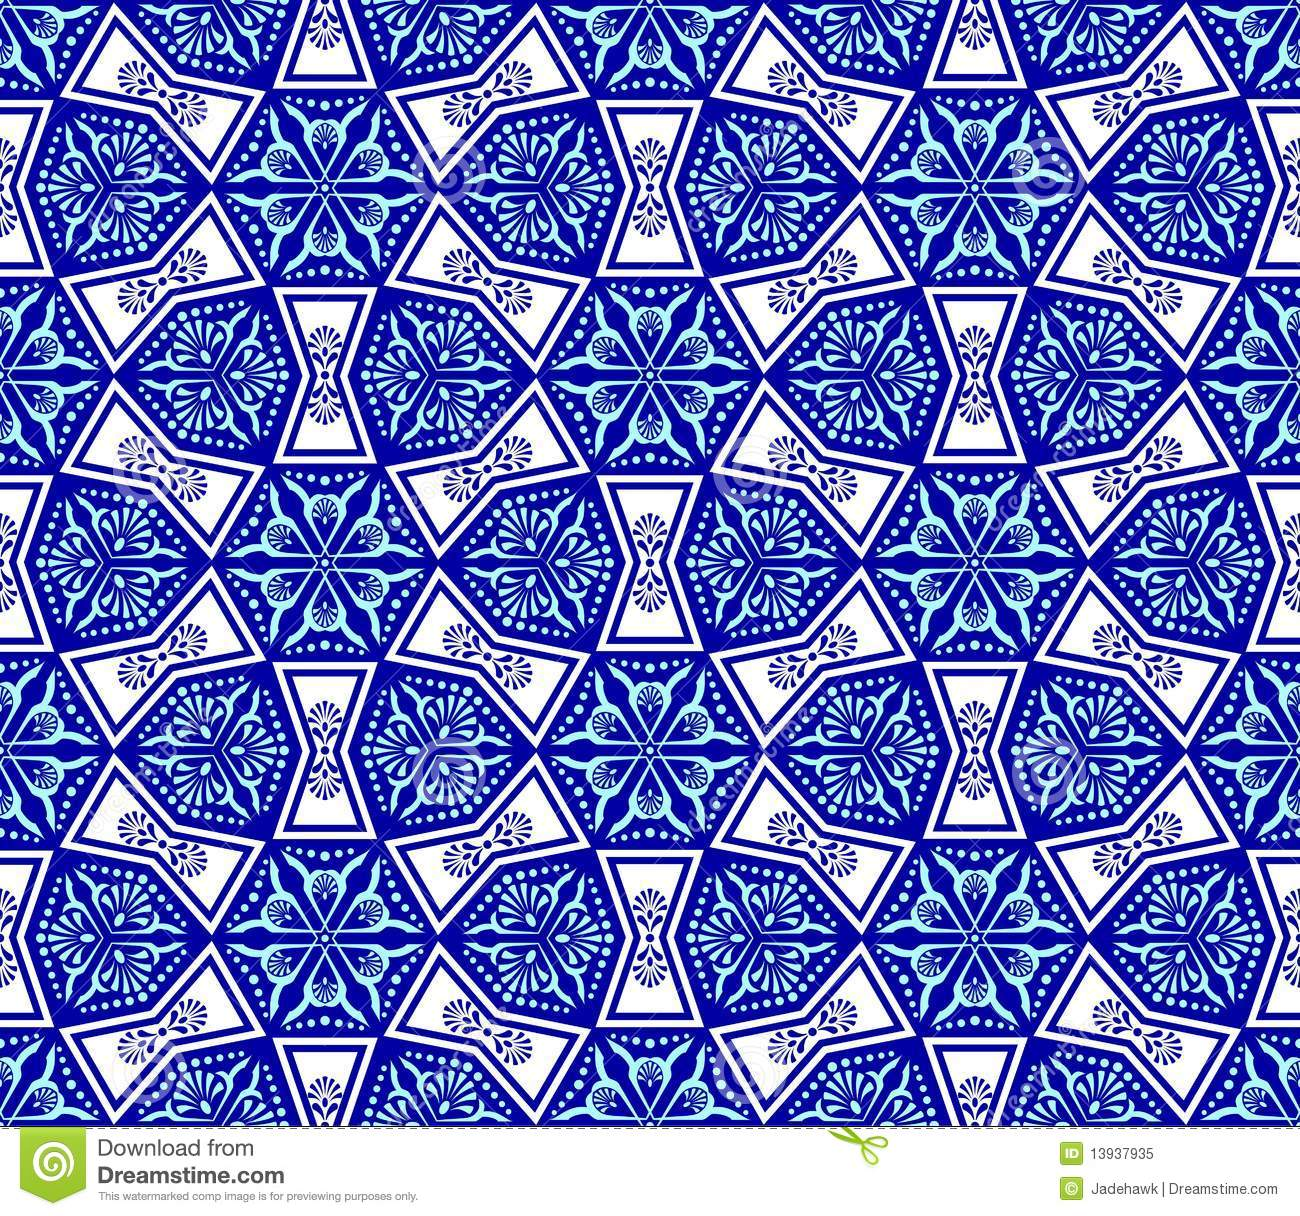 Seamless pattern inspired by Islamic art. The tiles can be combined ... Easy Arabesque Art